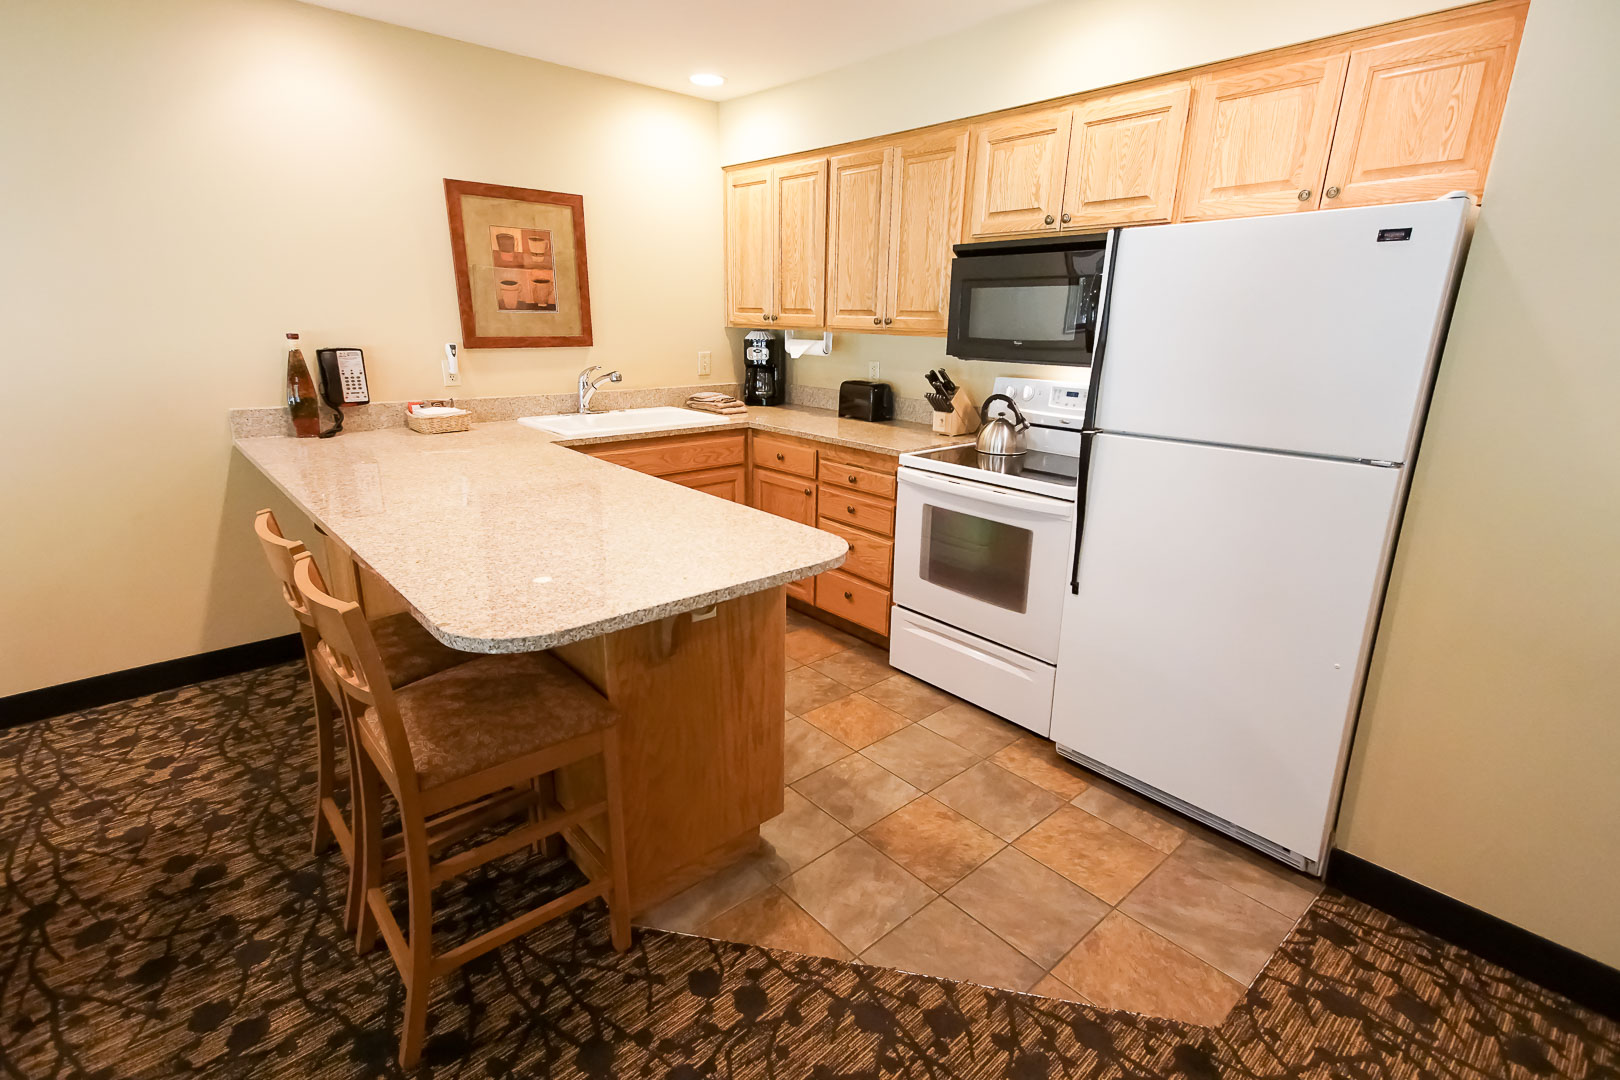 A charming kitchen at VRI's Whispering Woods Resort in Oregon.